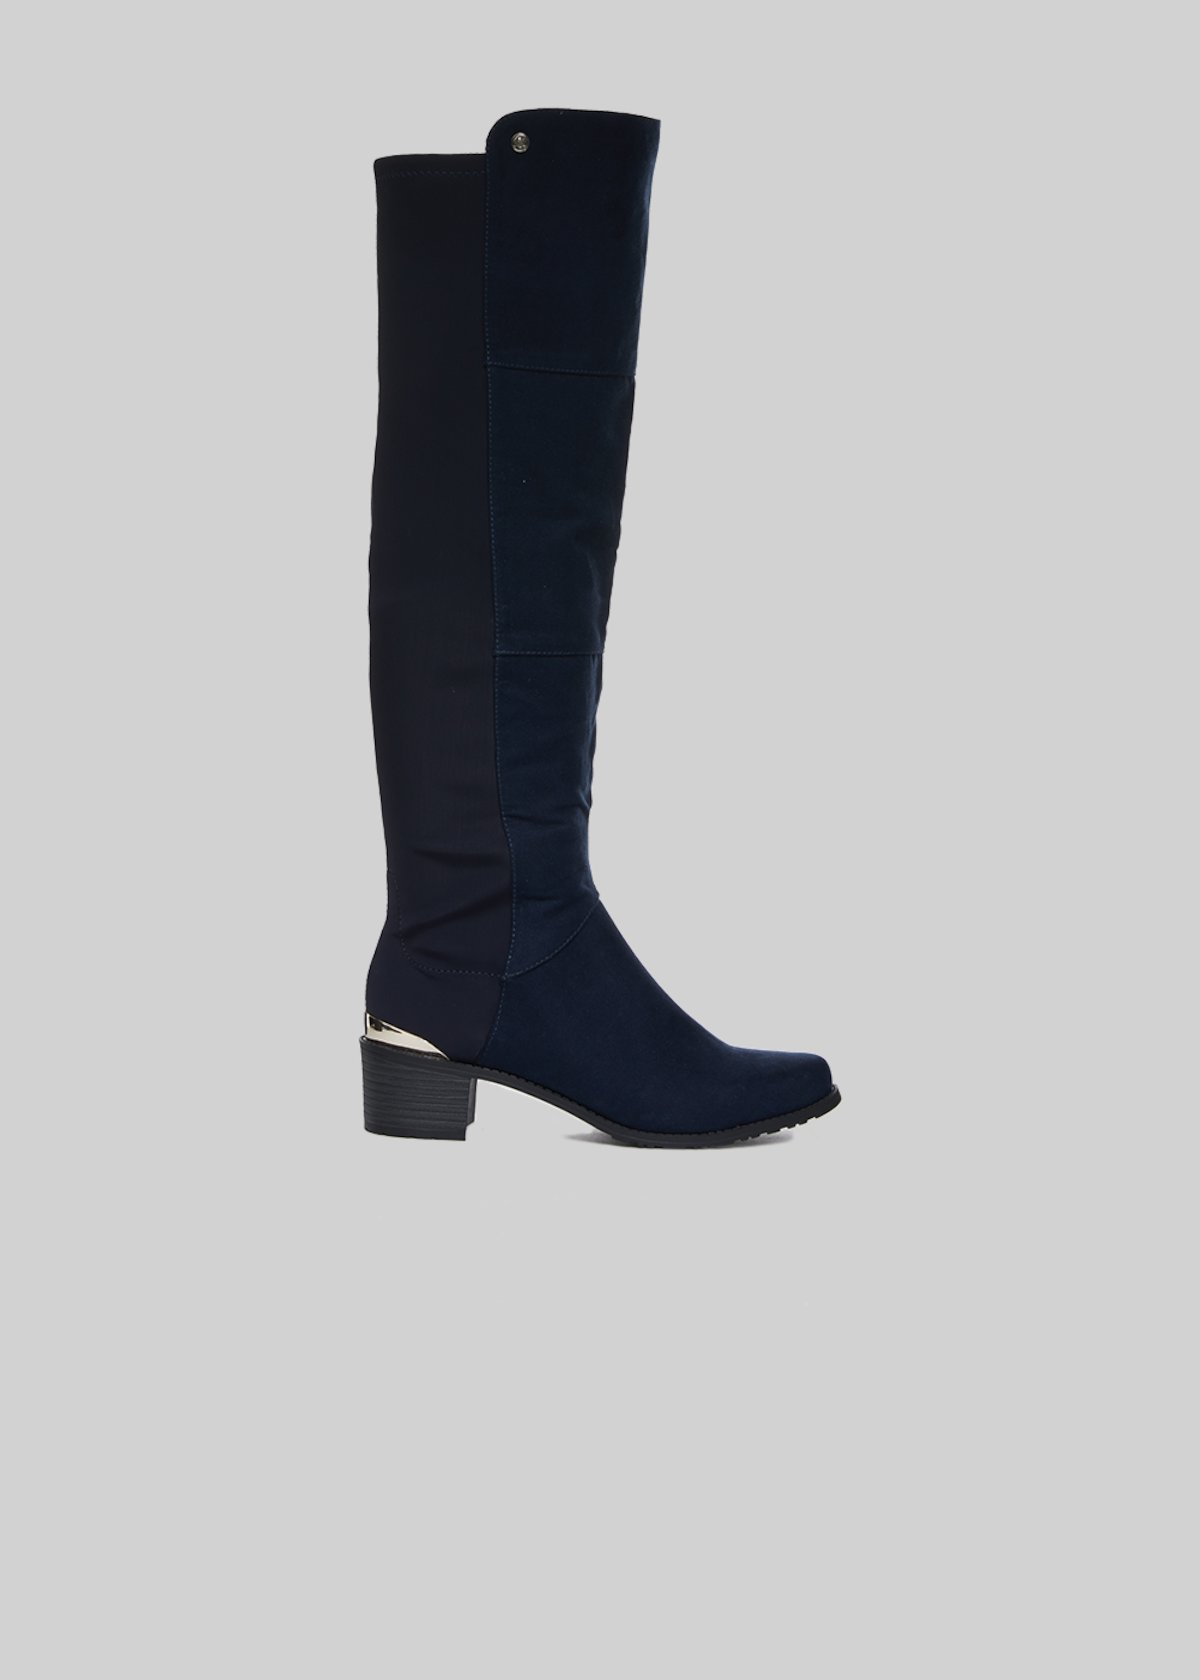 Stivali Sindy in fake suede con dettaglio metal sul retro - Dark Blue -  Donna - 96fc080f47b